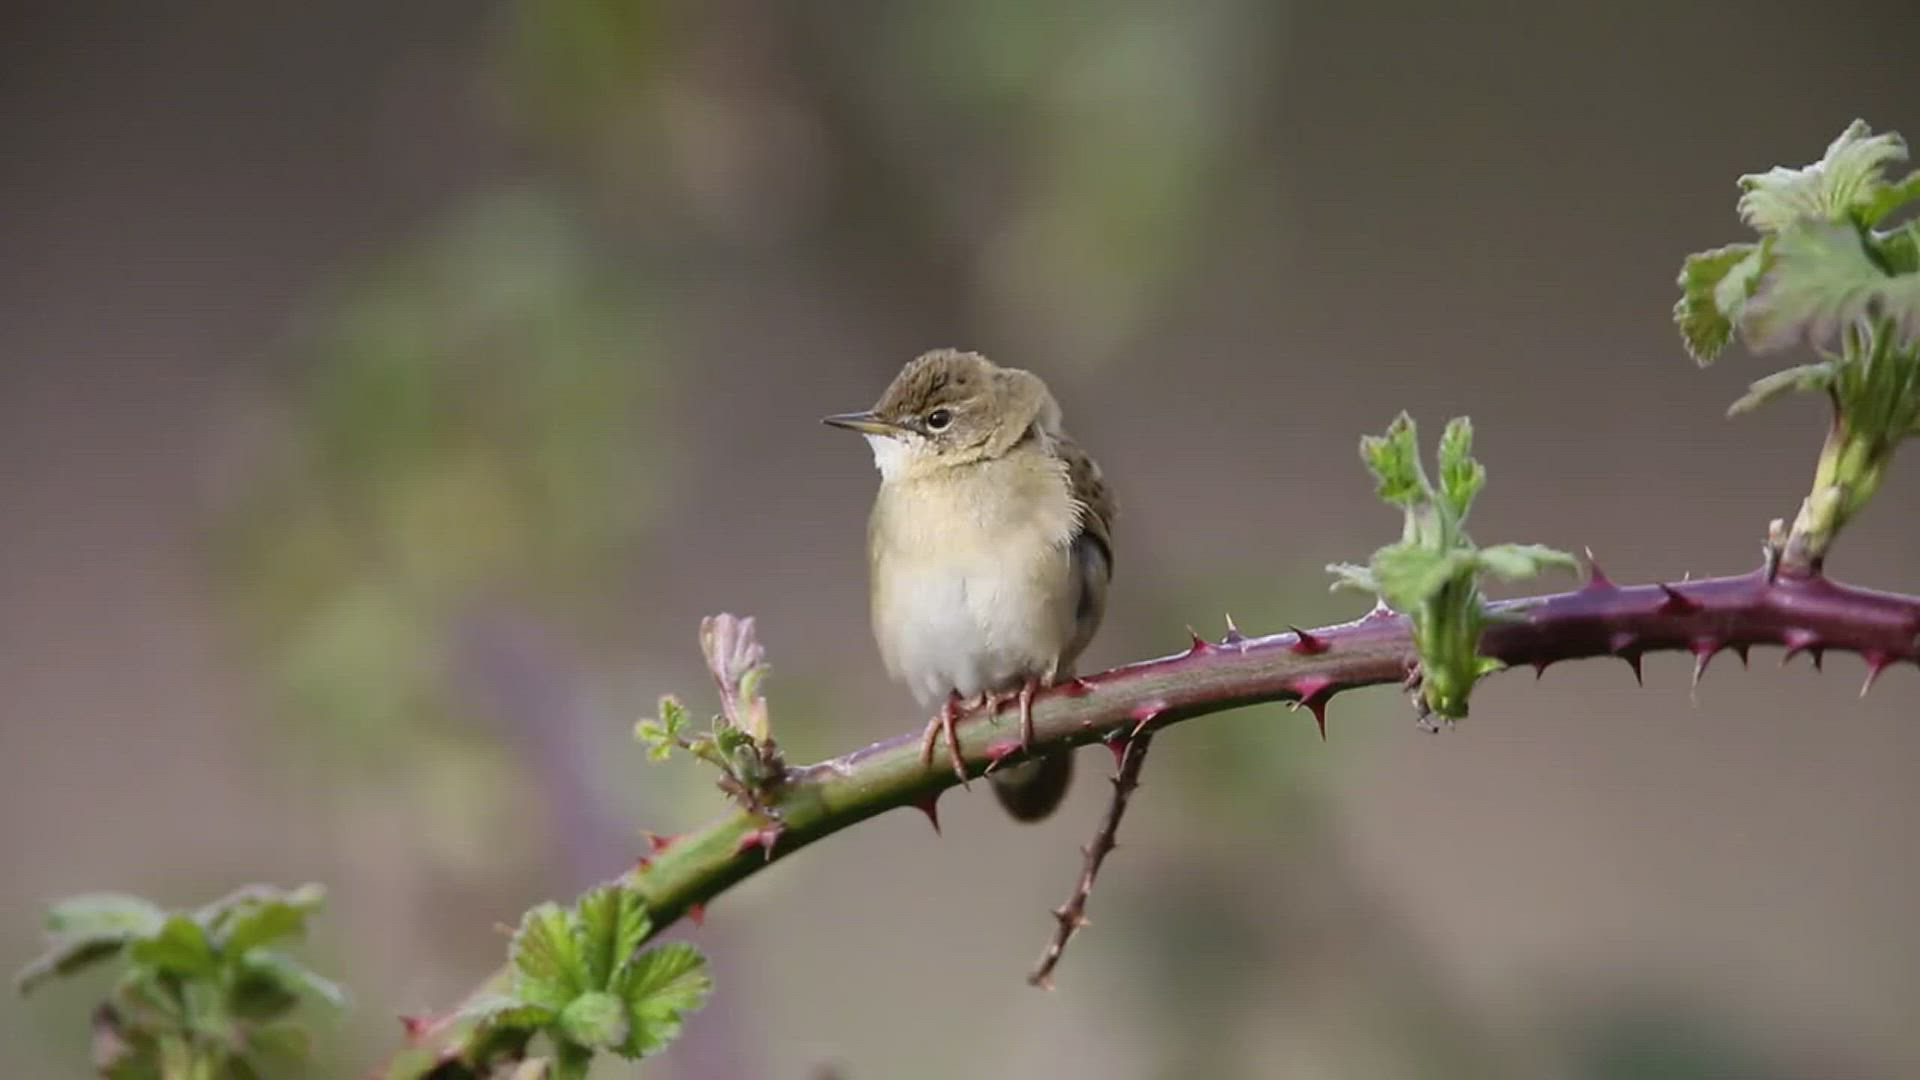 Grasshopper Warbler - dug it out from May 2013. It struggles in the wind, but the reel is piercing.